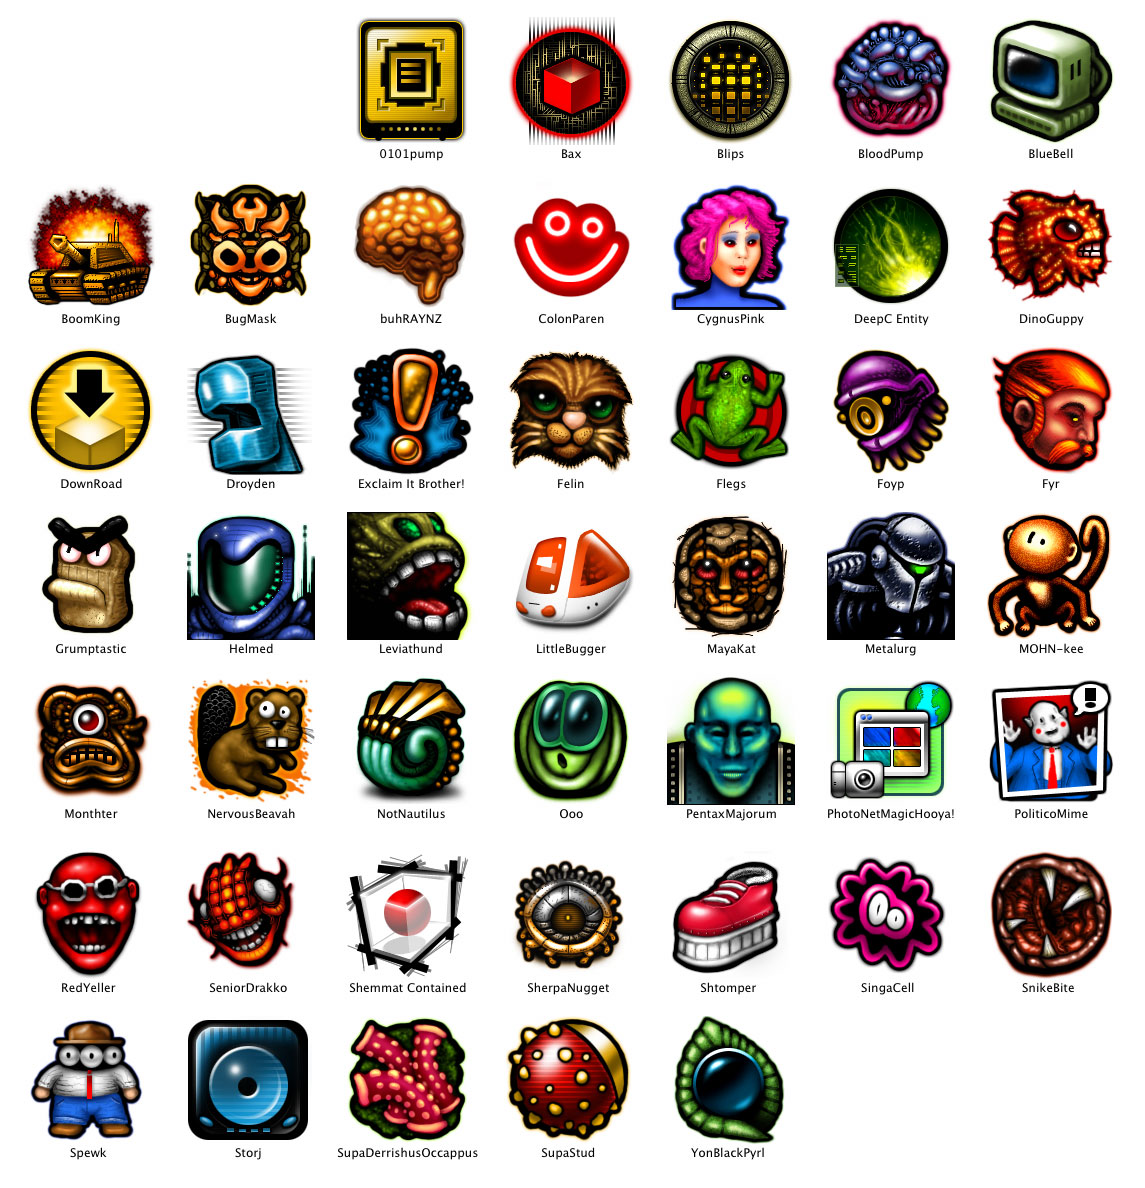 http://www.forrestwalter.com/icons/graphics/volume5.jpg